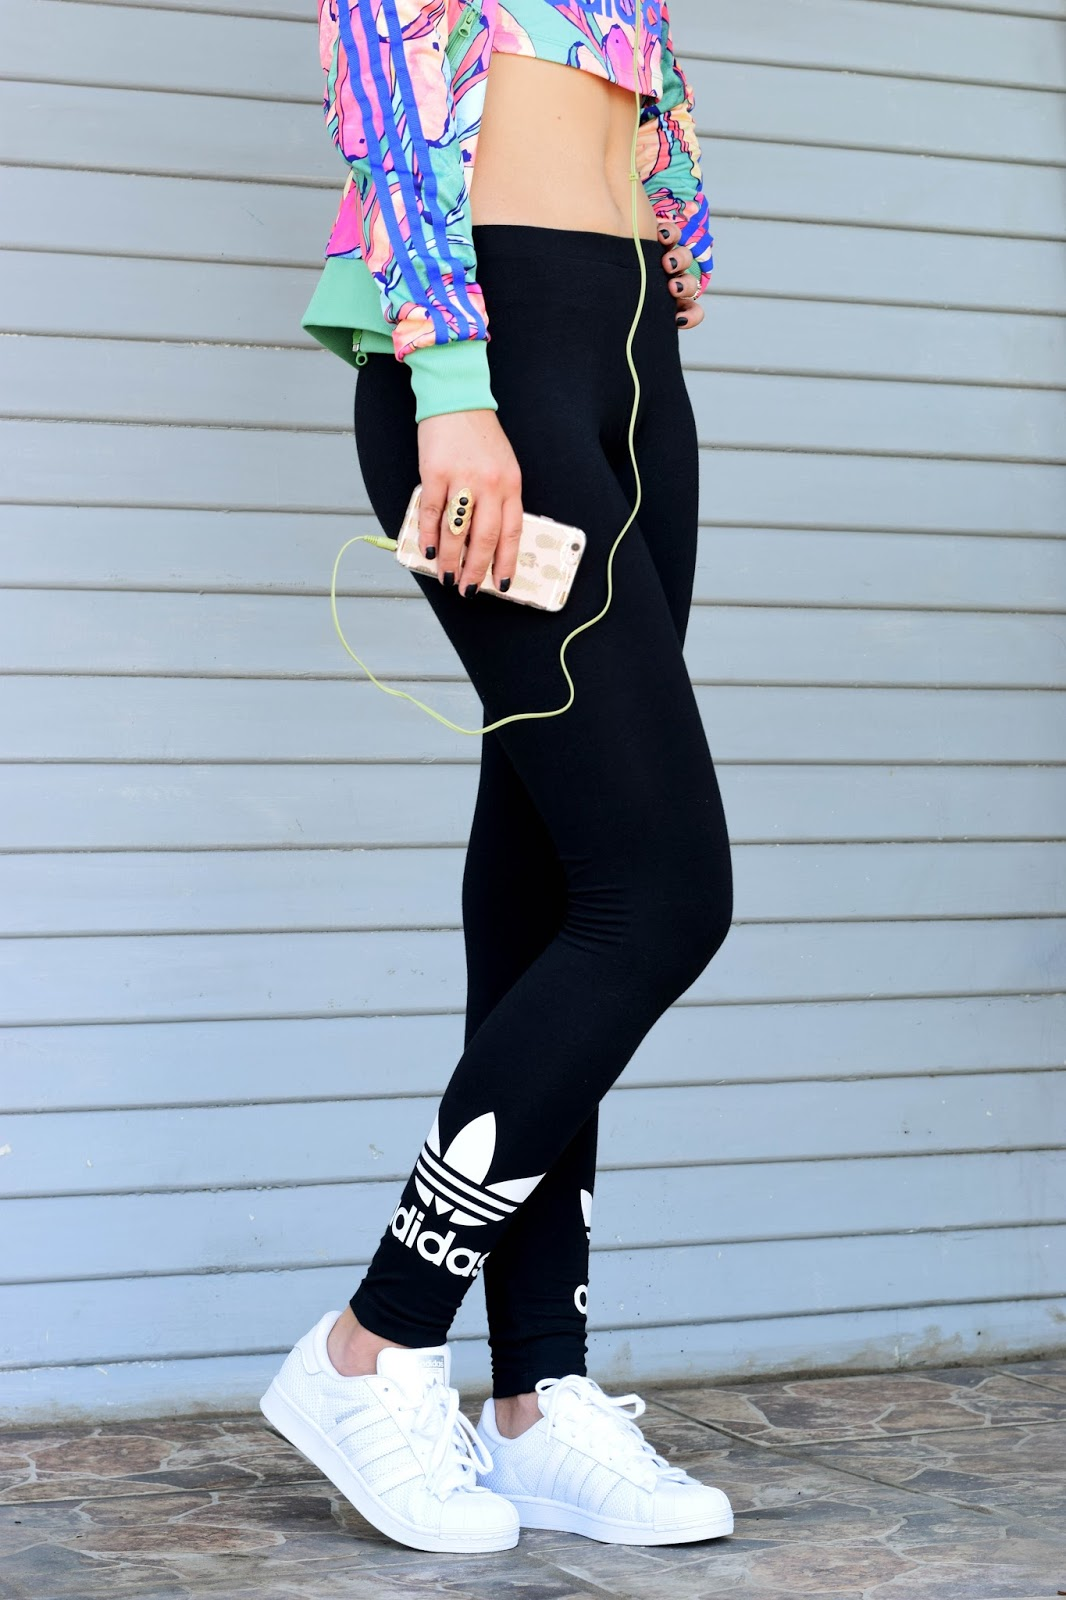 adidas, banana, what to wear on an airplane, travel, banana sweater, crop top, superstar adidas, sneakers, yoga pants